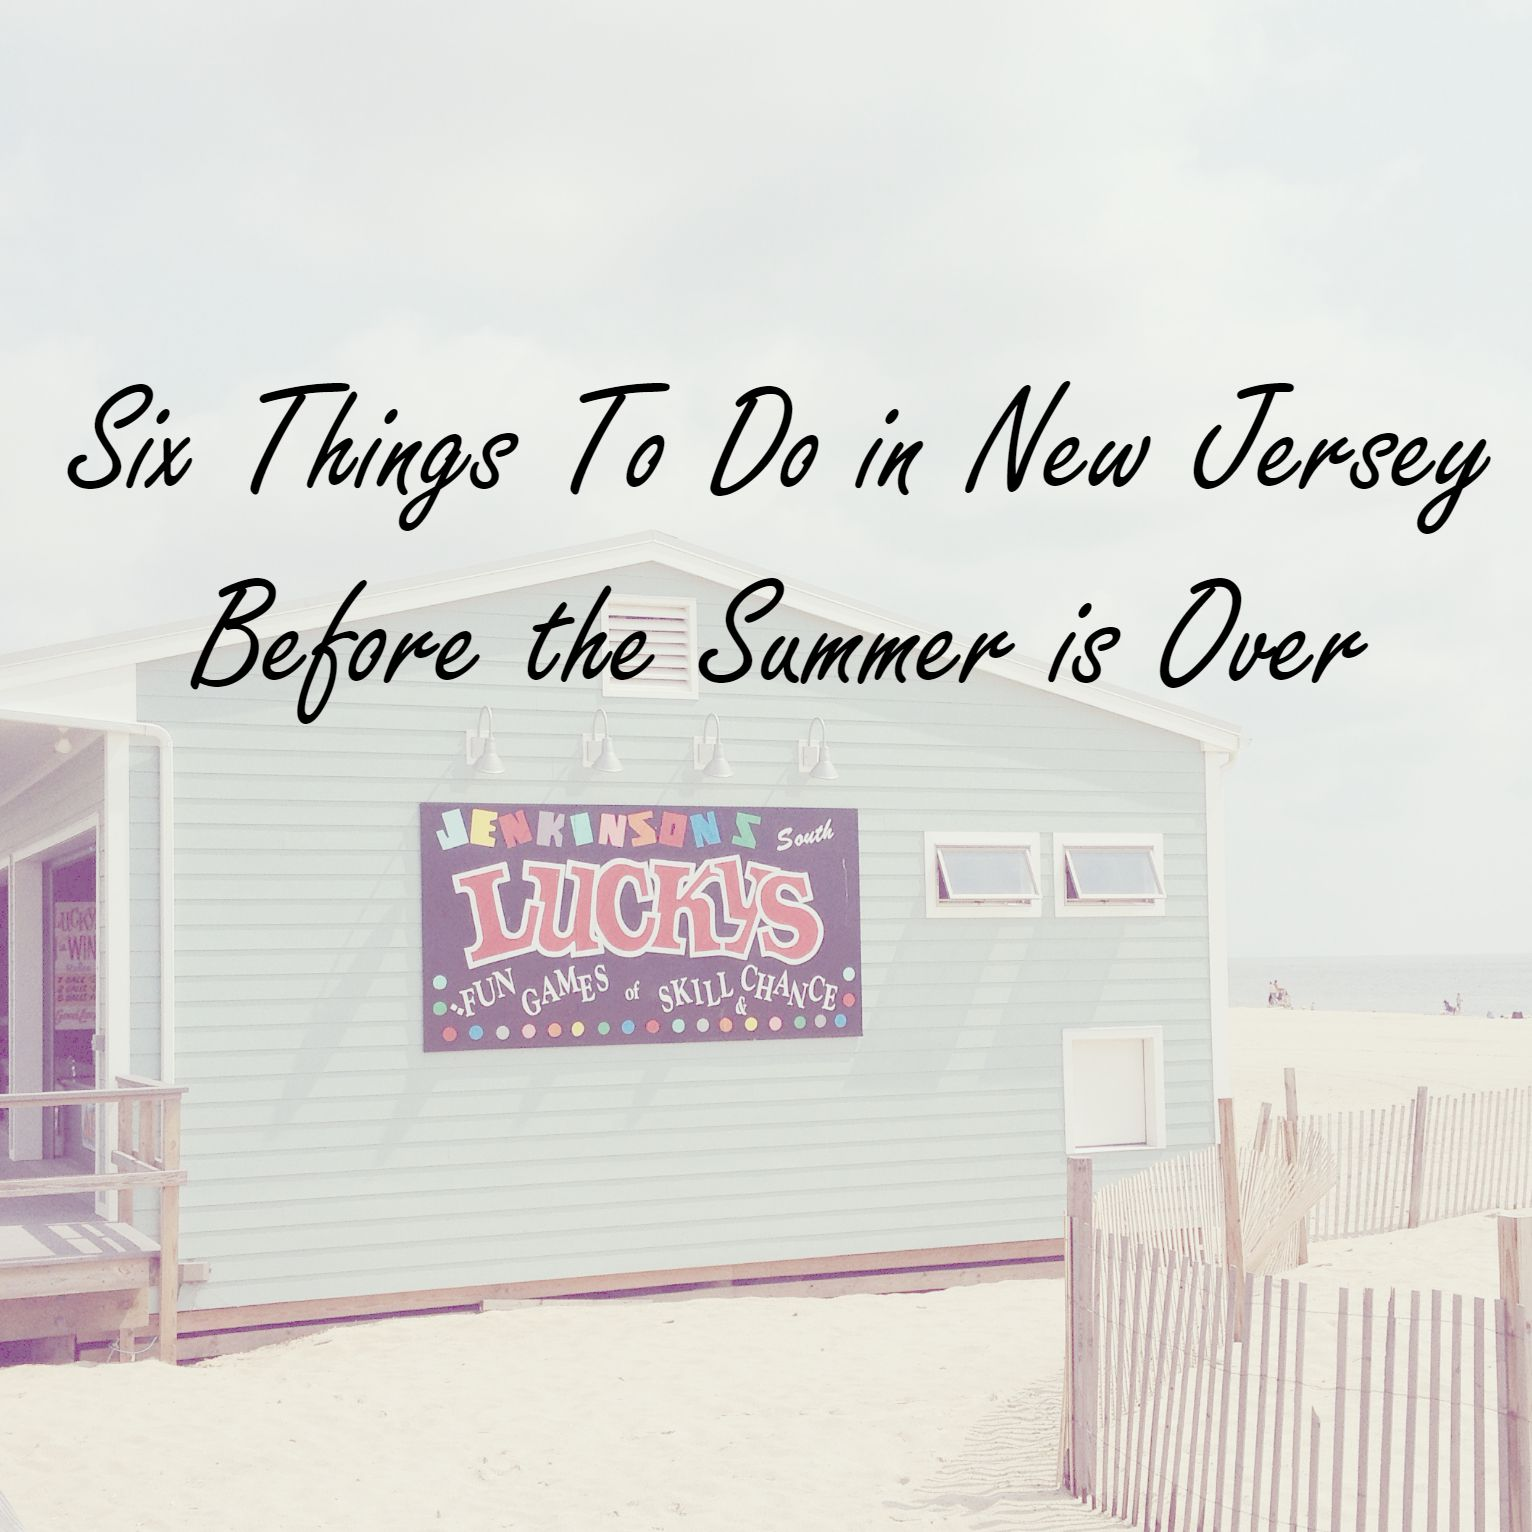 Six Things to Do in New Jersey Before the Summer is Over